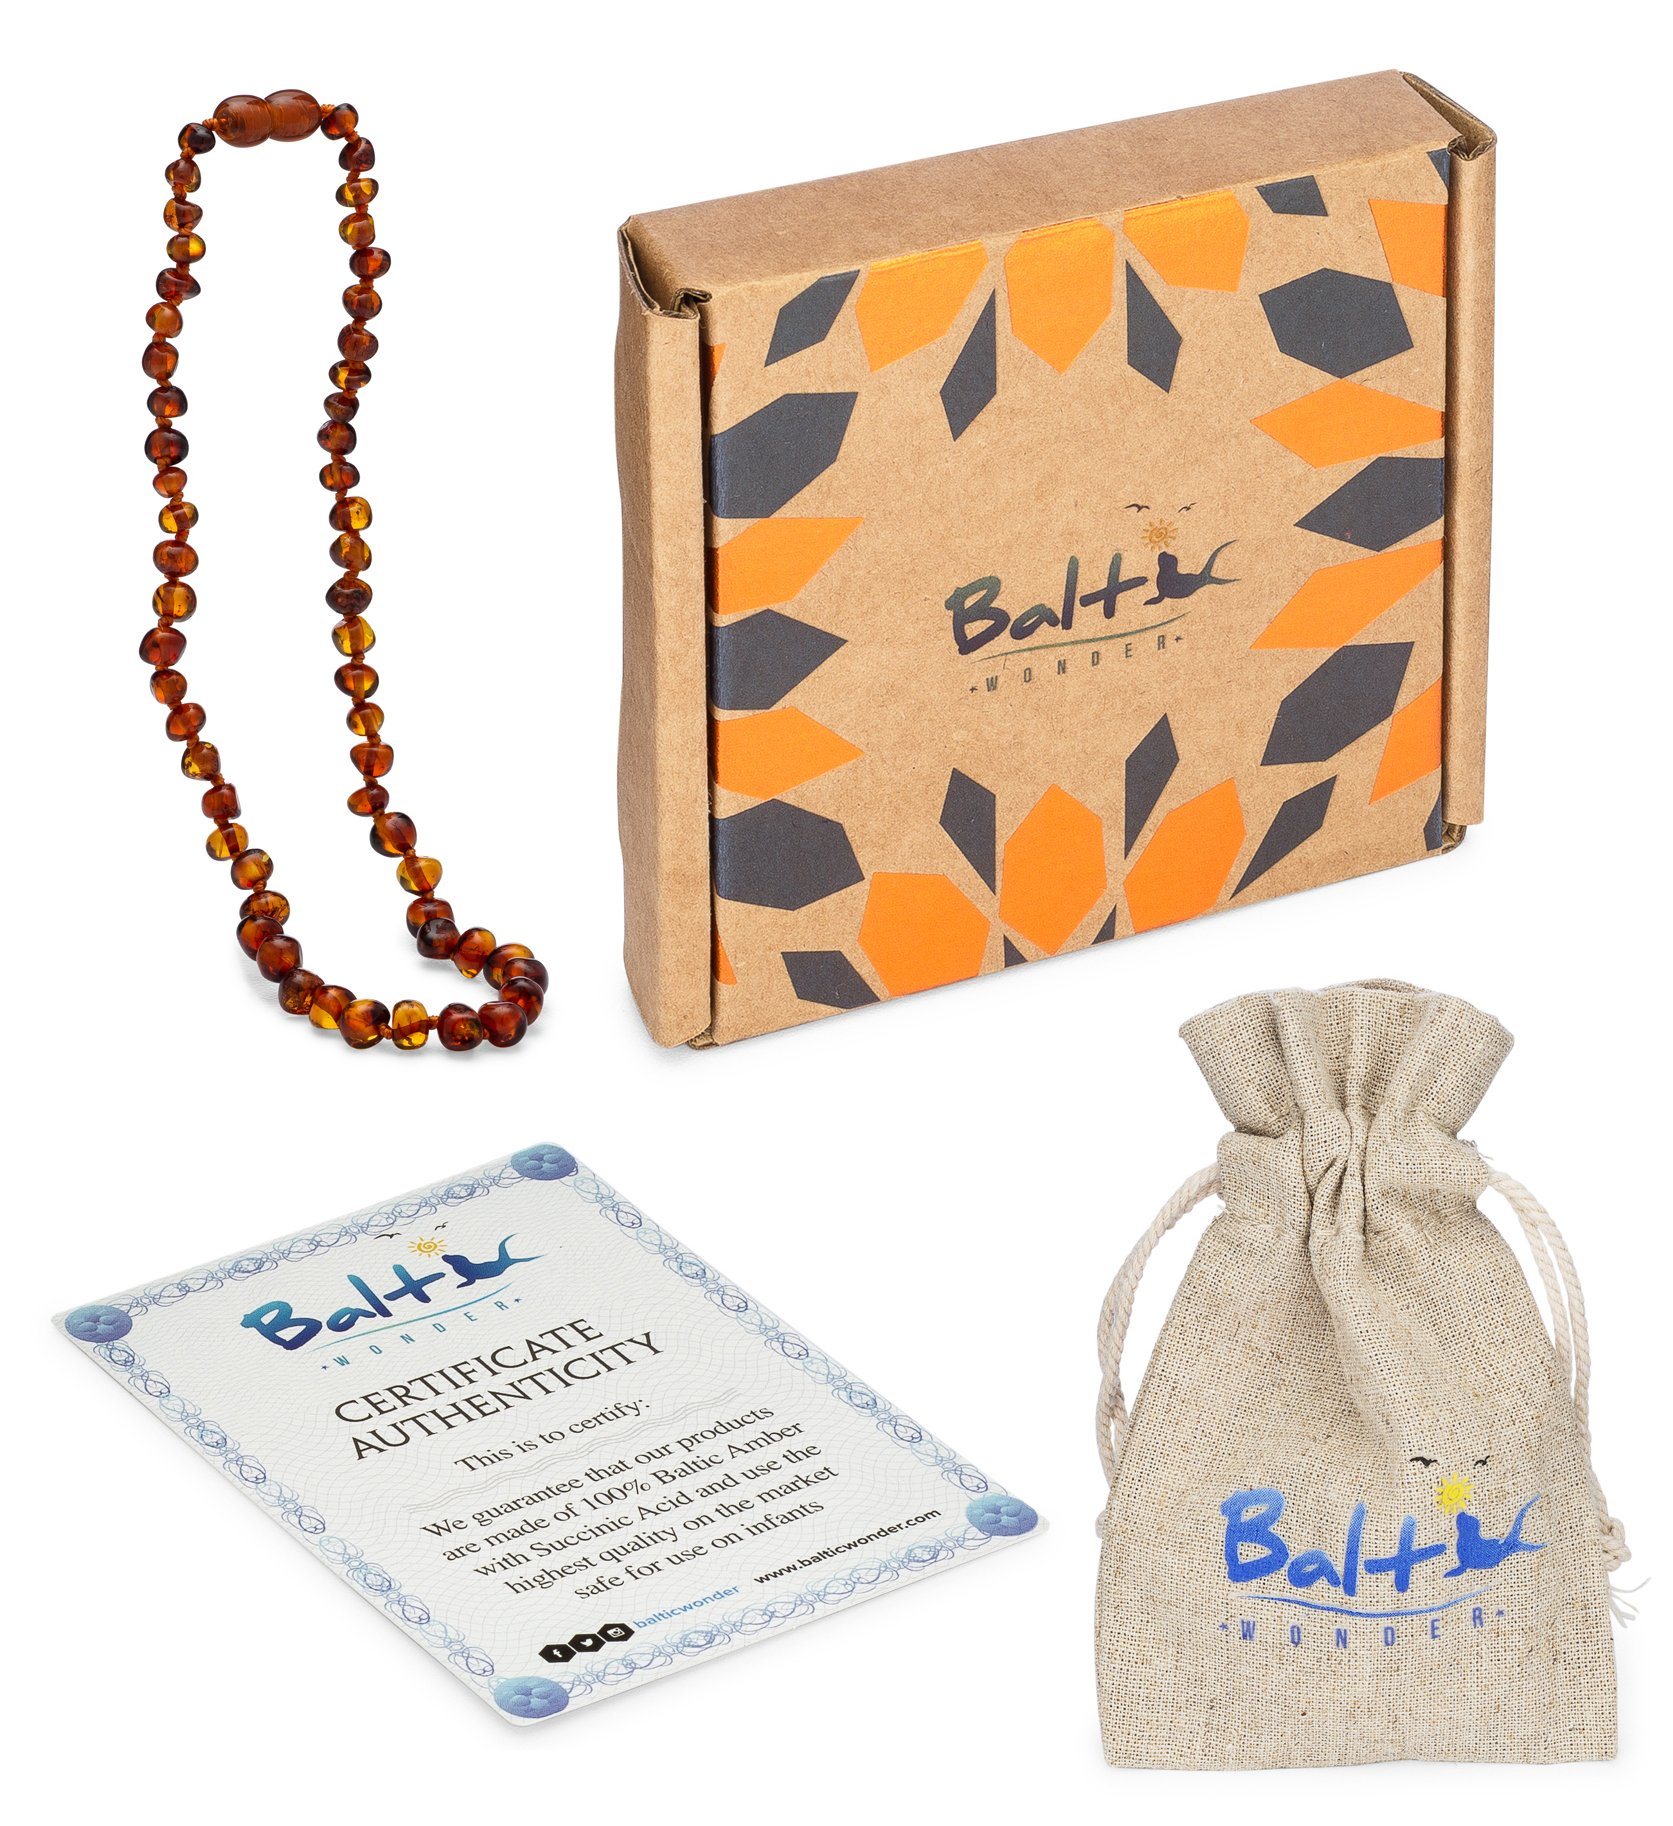 Baltic Amber Teething Necklace For Babies (Unisex) (Cognac) - Anti Flammatory, Drooling & Teething Pain Reduce Properties - Natural Certificated Oval Baltic Jewelry with the Highest Quality Guaranteed by Baltic Wonder (Image #5)